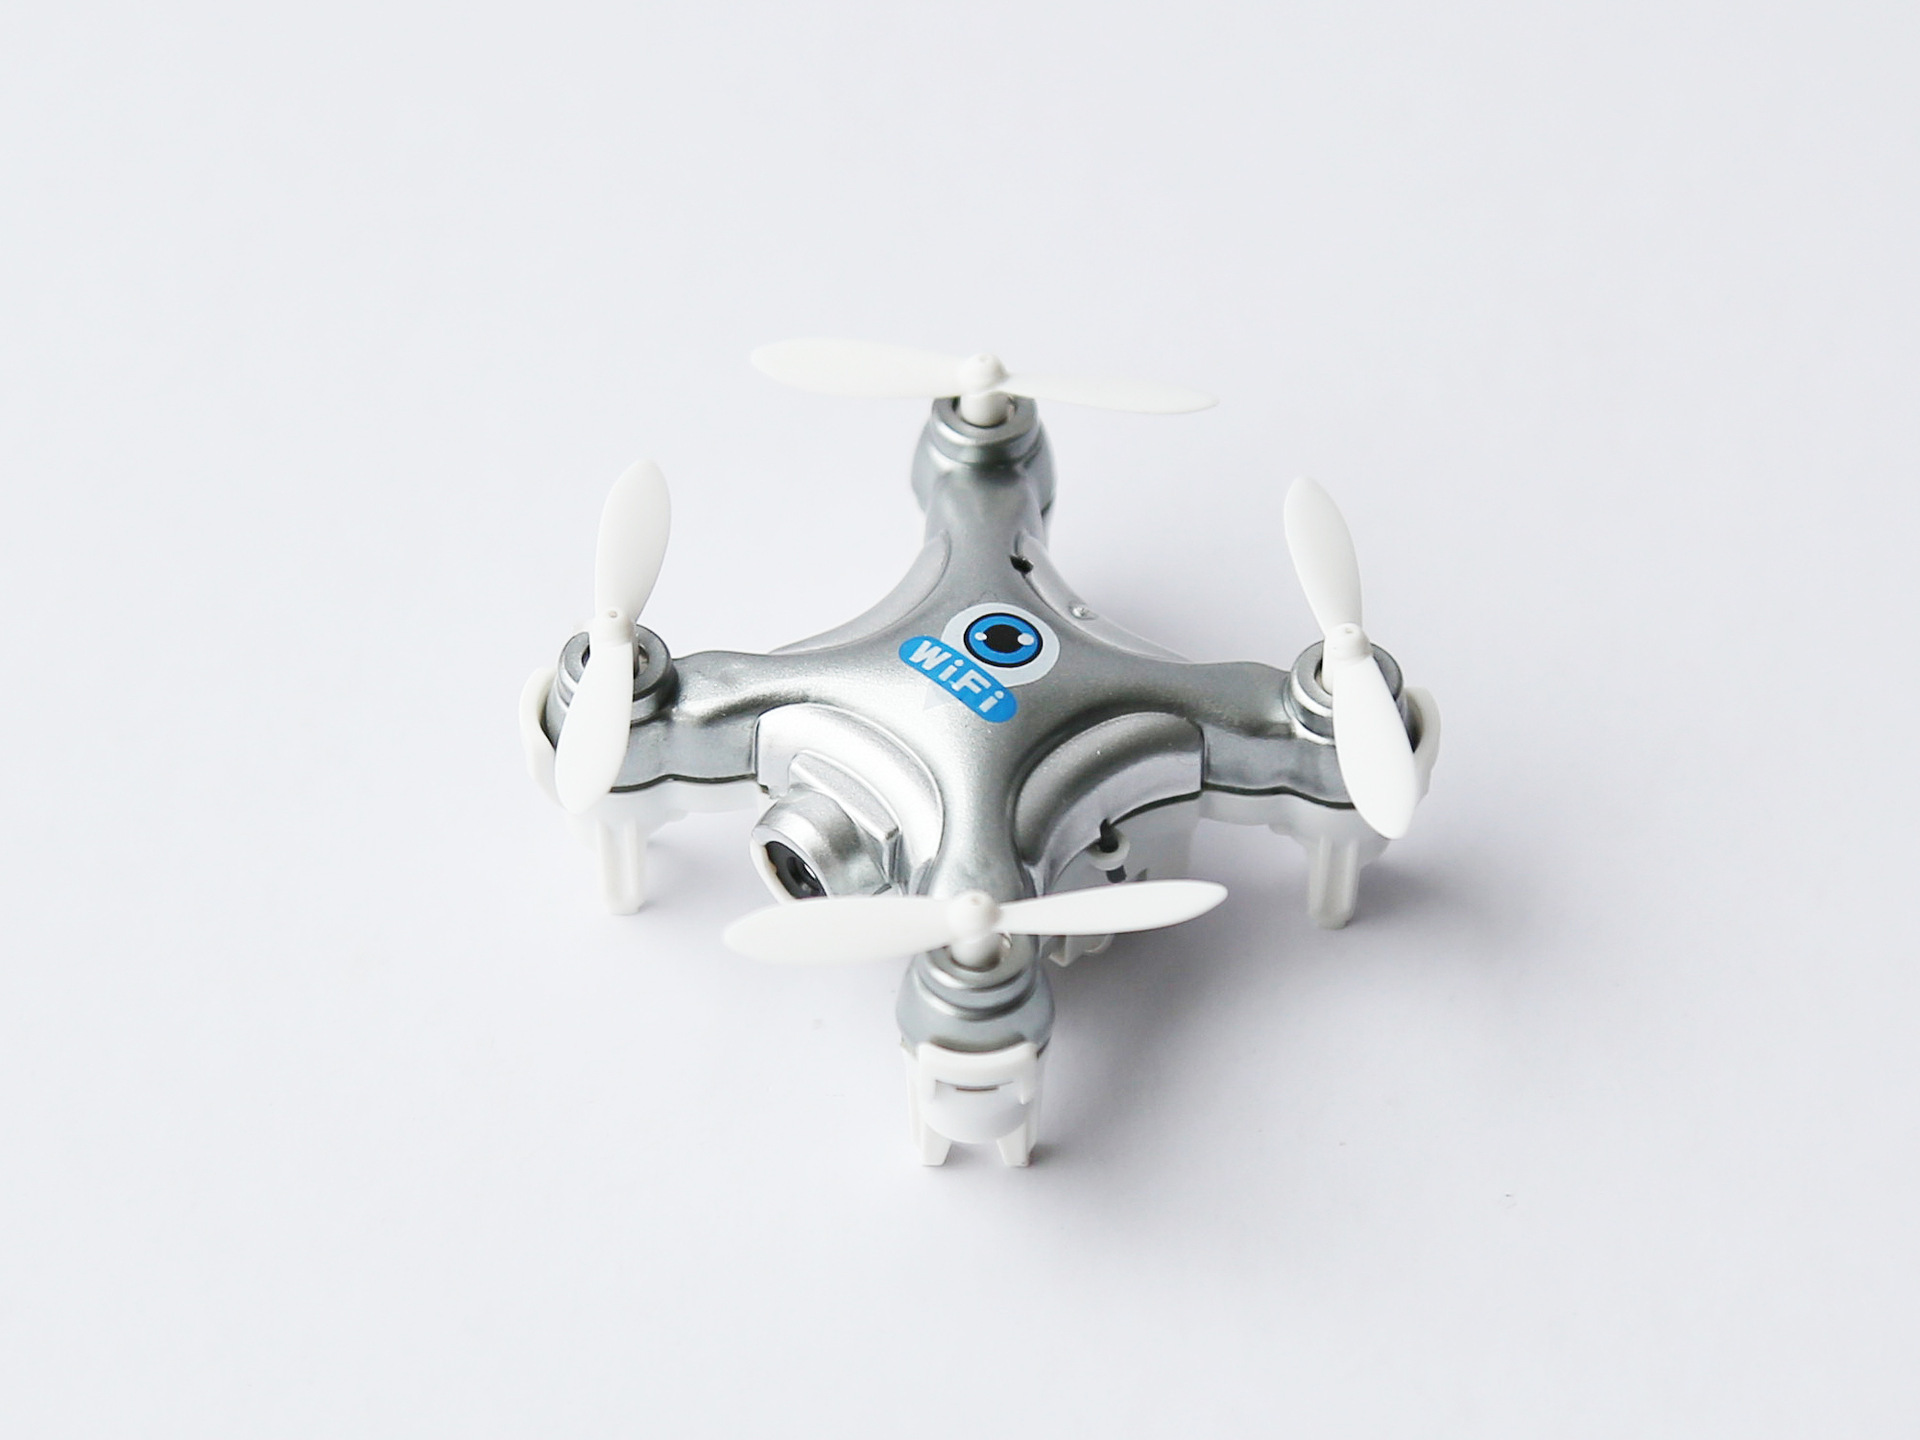 Chengxing Quadcopter Cx-10w Remote Control Mini Unmanned Aerial Vehicle Wifi Aerial Pass Hot Selling